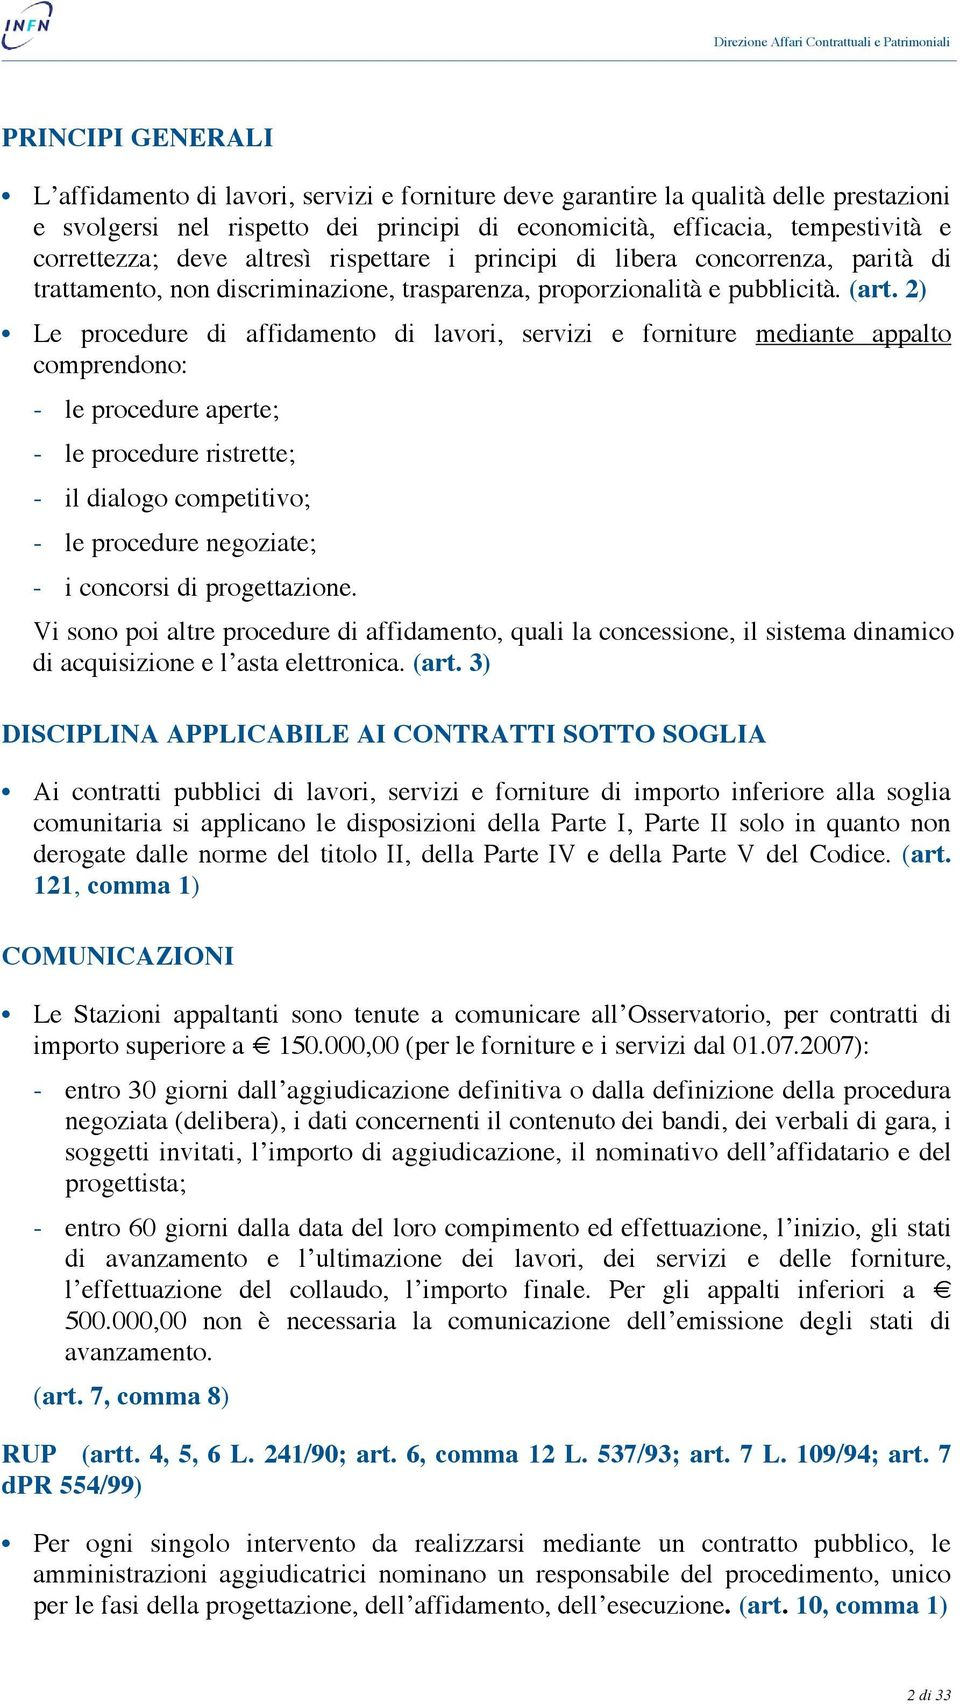 2) Le procedure di affidamento di lavori, servizi e forniture mediante appalto comprendono: - le procedure aperte; - le procedure ristrette; - il dialogo competitivo; - le procedure negoziate; - i